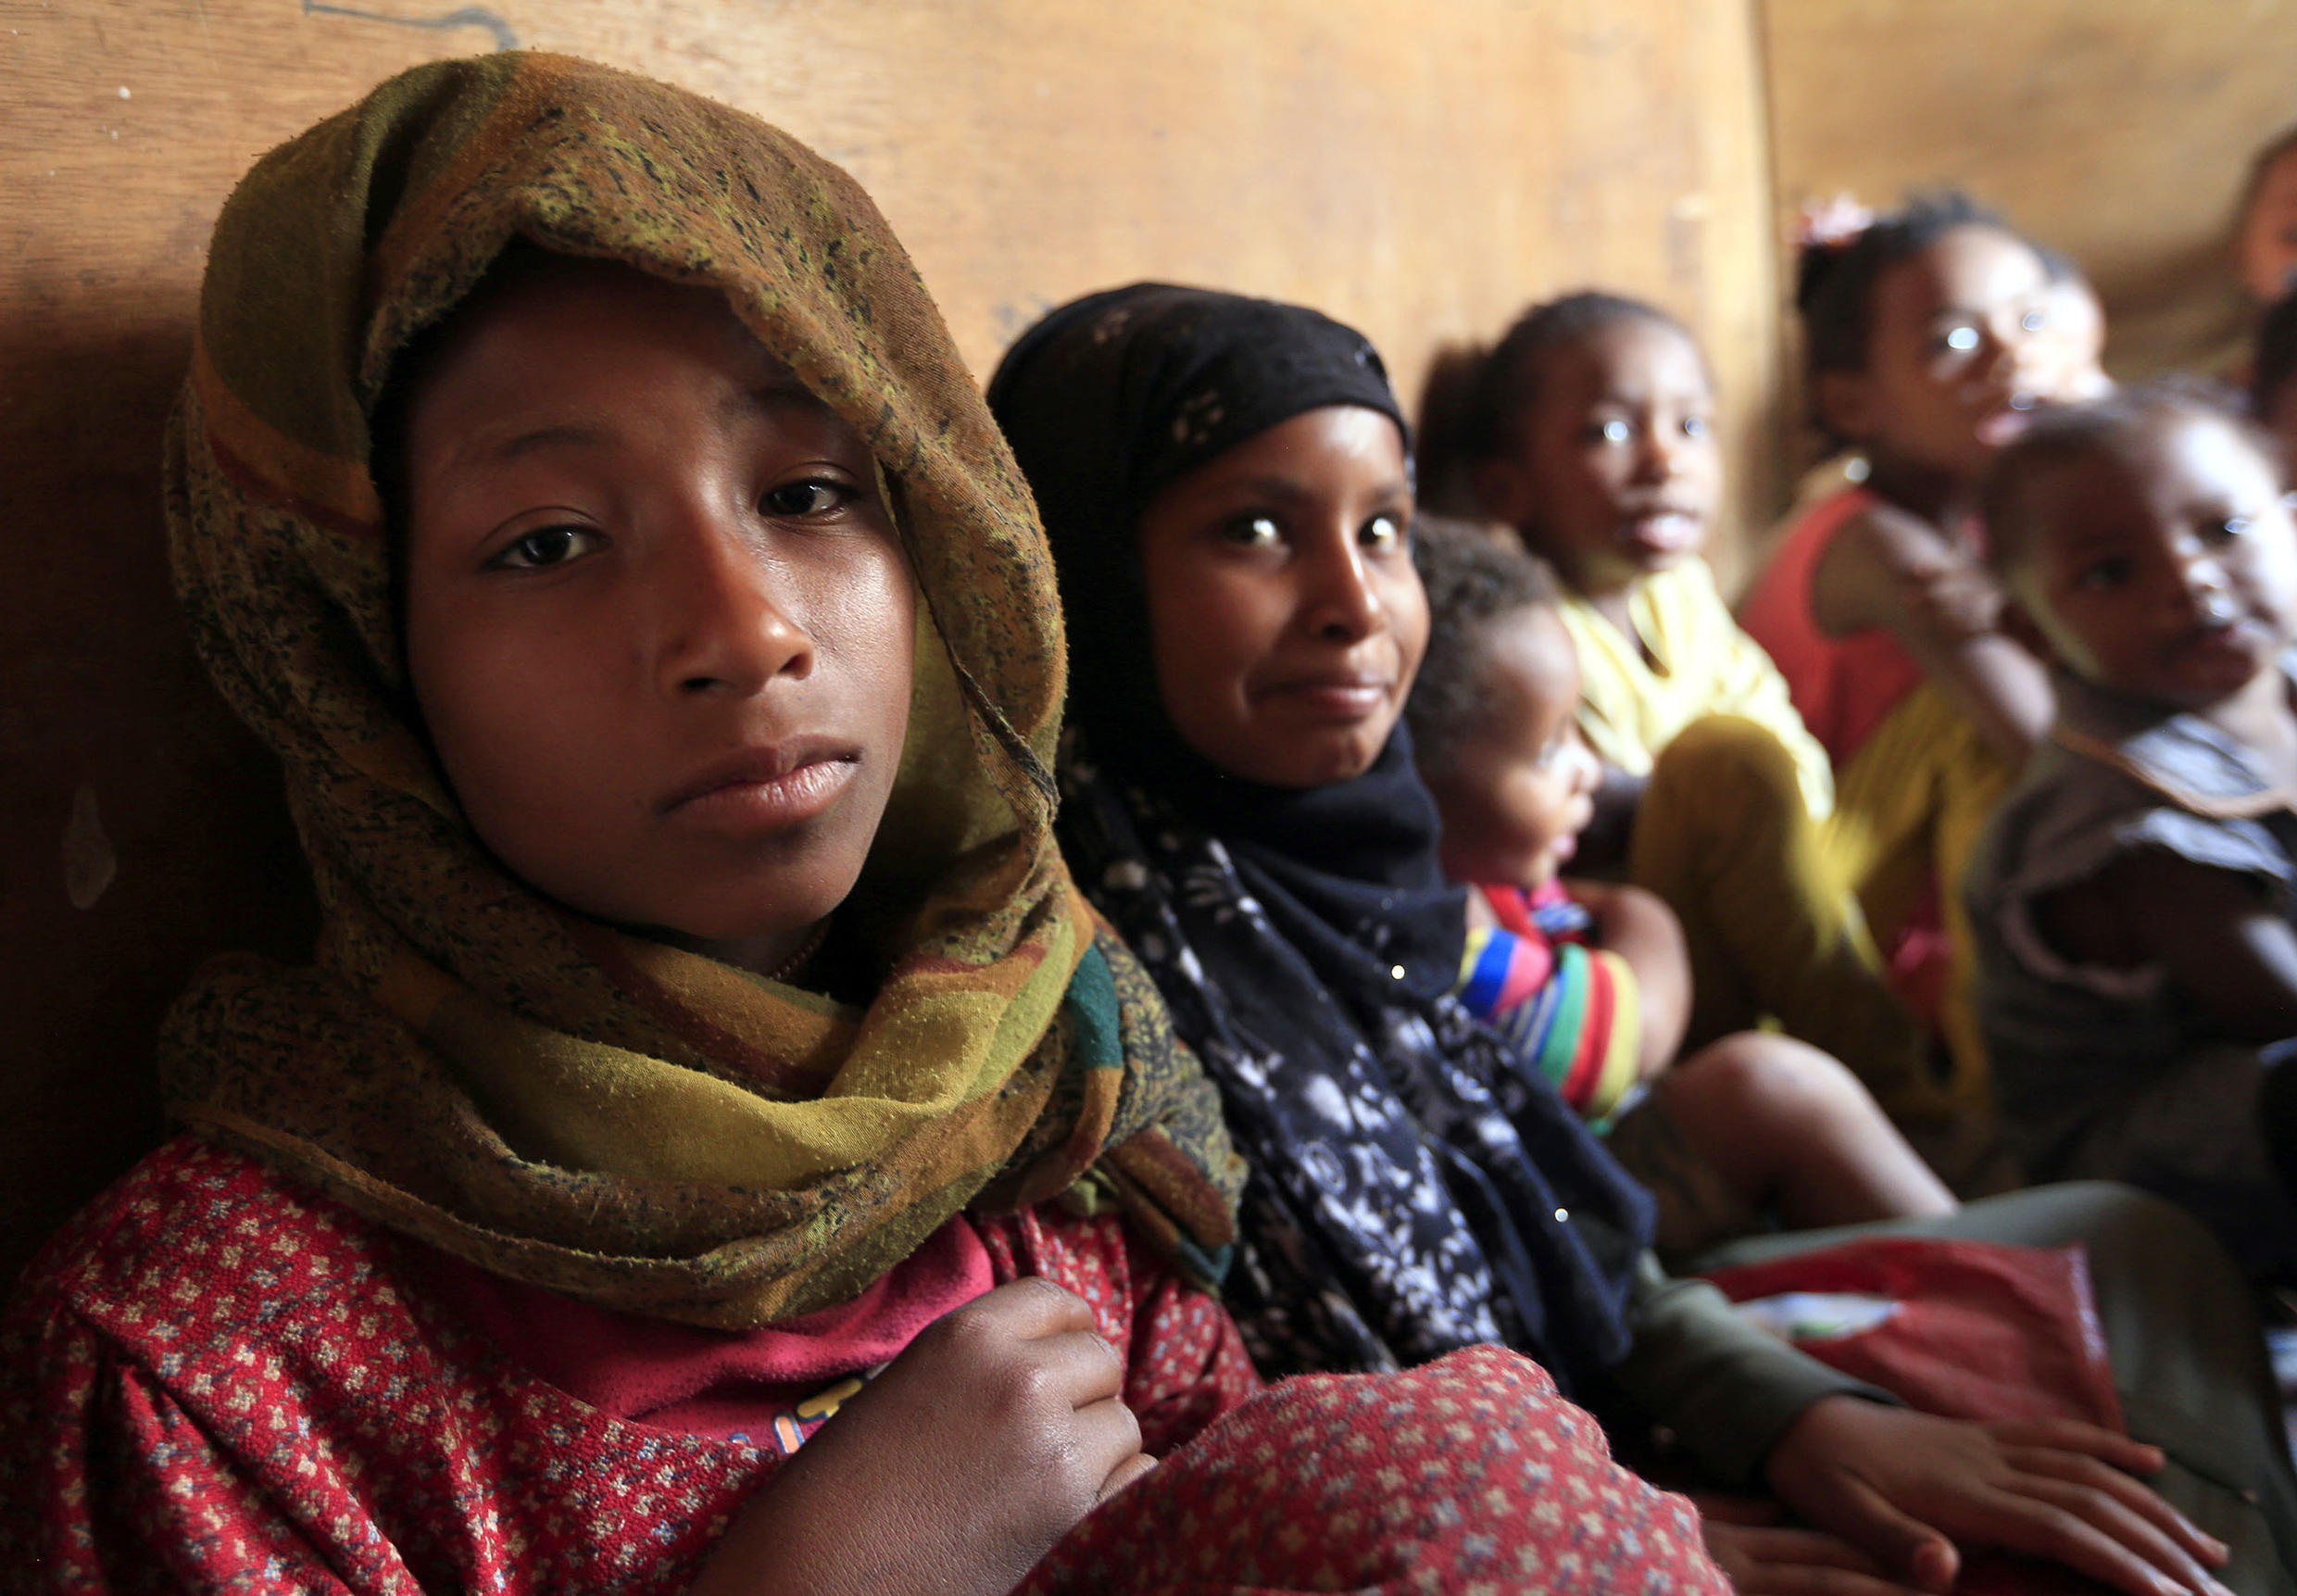 Black Yemenis count among the poorest of the poor in the Arab world's most impoverishedcountry blighted by more than five years of conflict